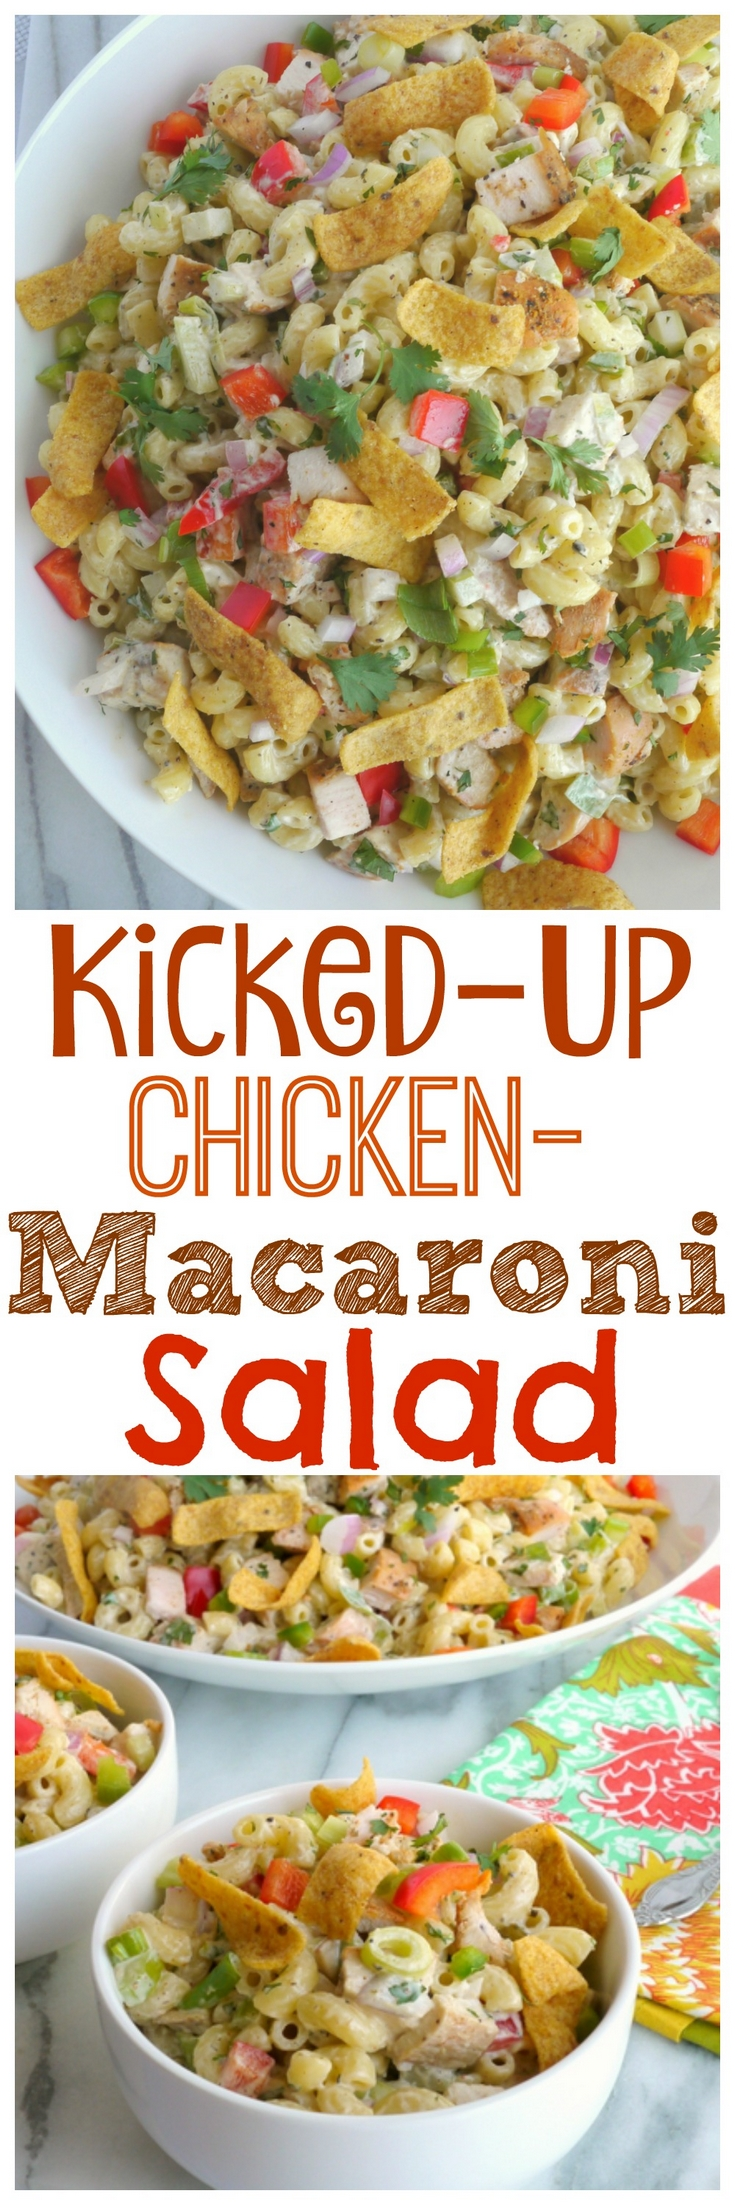 This Kicked-Up Chicken-Macaroni Salad recipe will impress your family and friends at your next picnic, BBQ or tailgate. This chicken macaroni salad pairs well with almost anything and will have your guests begging for more. via @cmpollak1